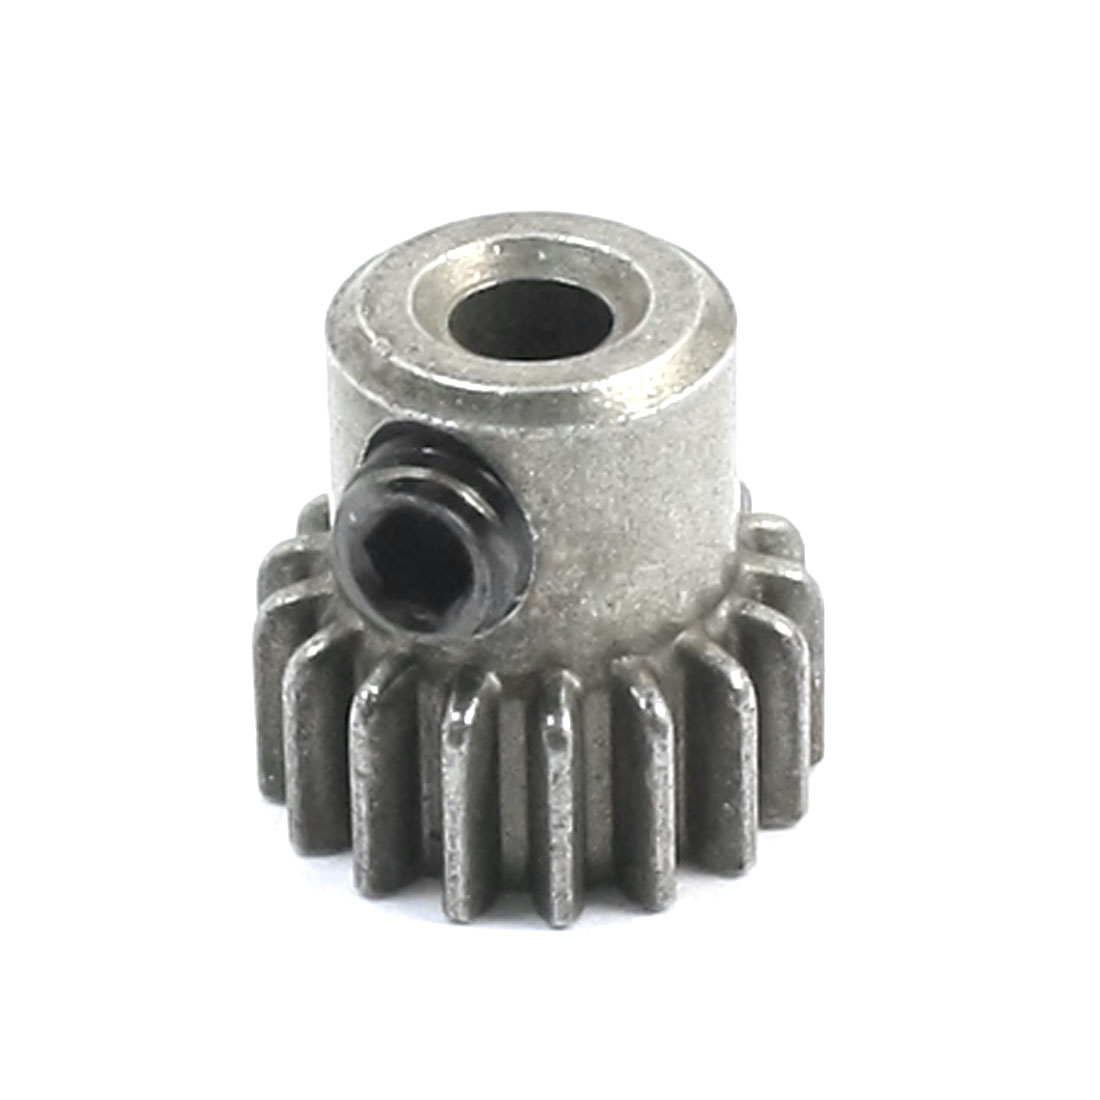 17T Steel Motor Pinion Gear 3mm Dia Shaft Hole for 94170 RC 1/10 Car